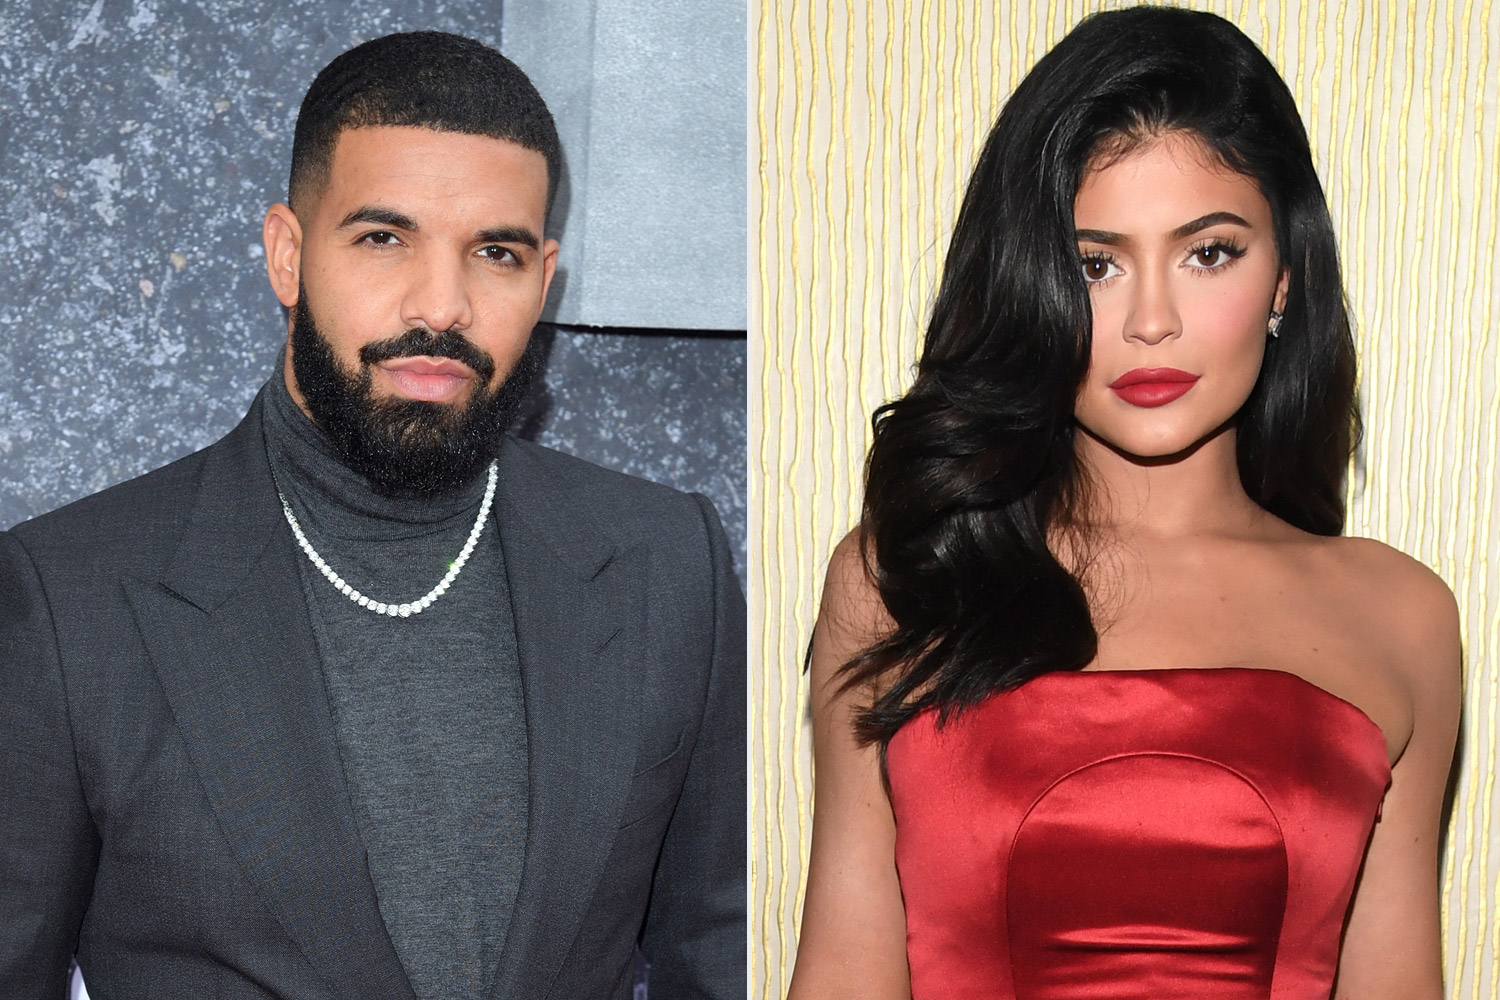 Drake S Statement After Release Of Leaked Song Calling Kylie Side